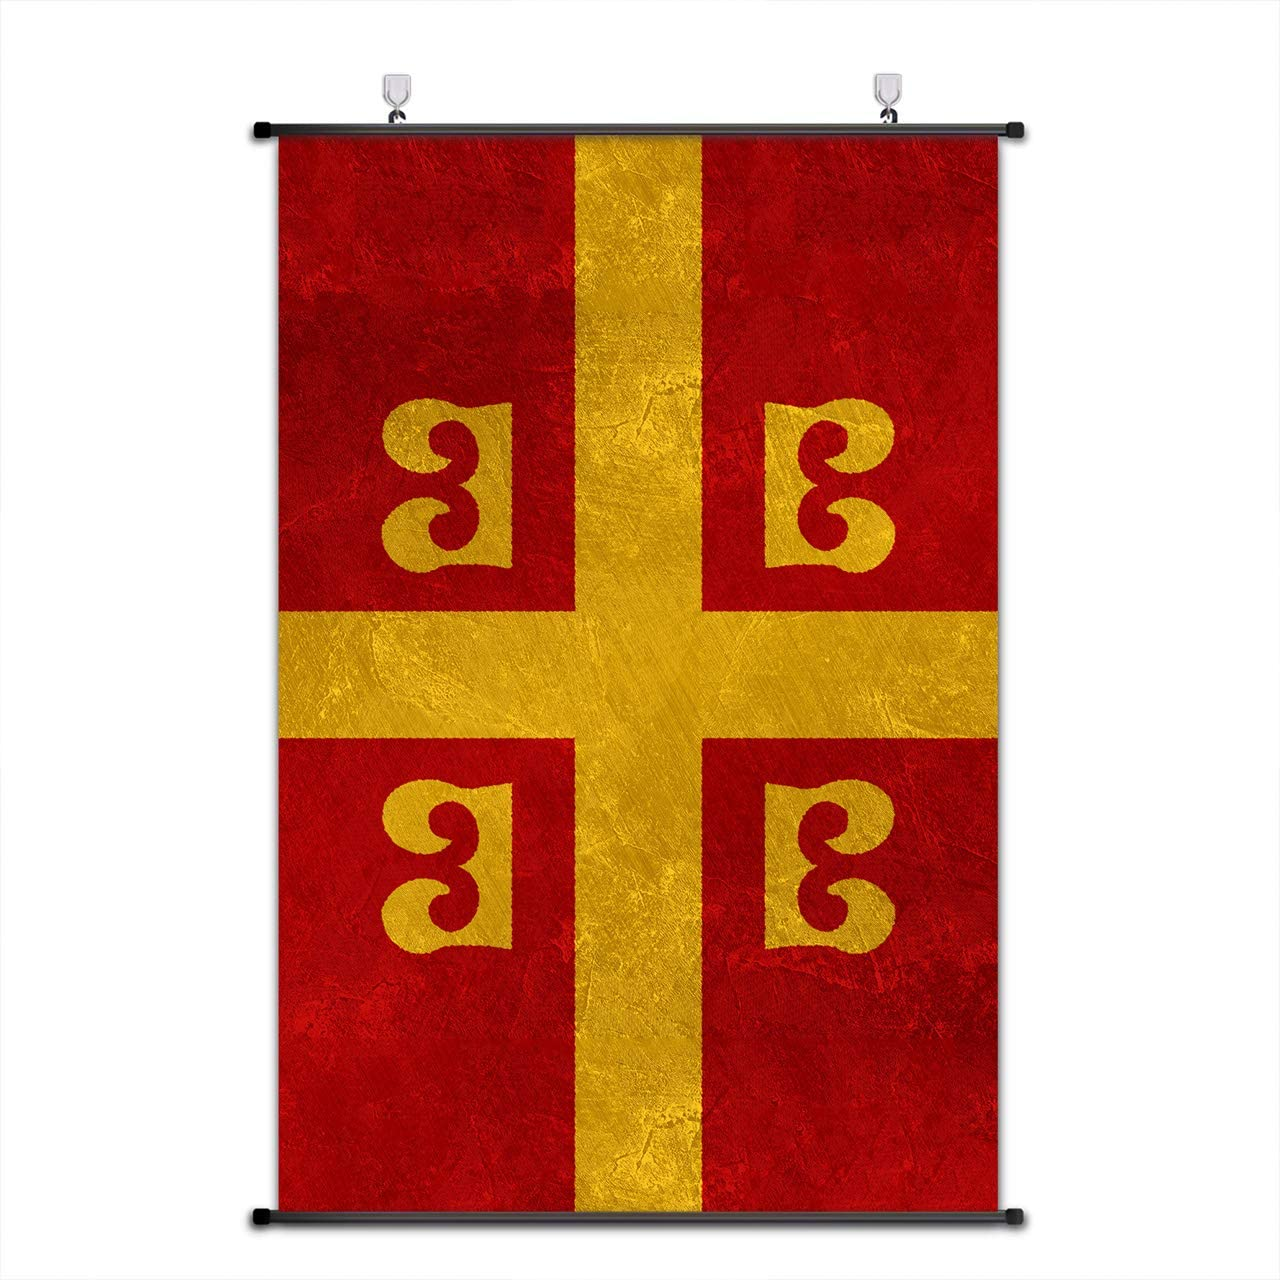 Nice Captain Medieval Coat of Arms Scroll Poster Middle Ages Banner Wall Art Home Decor 75x50cm (Byzantine Empire)